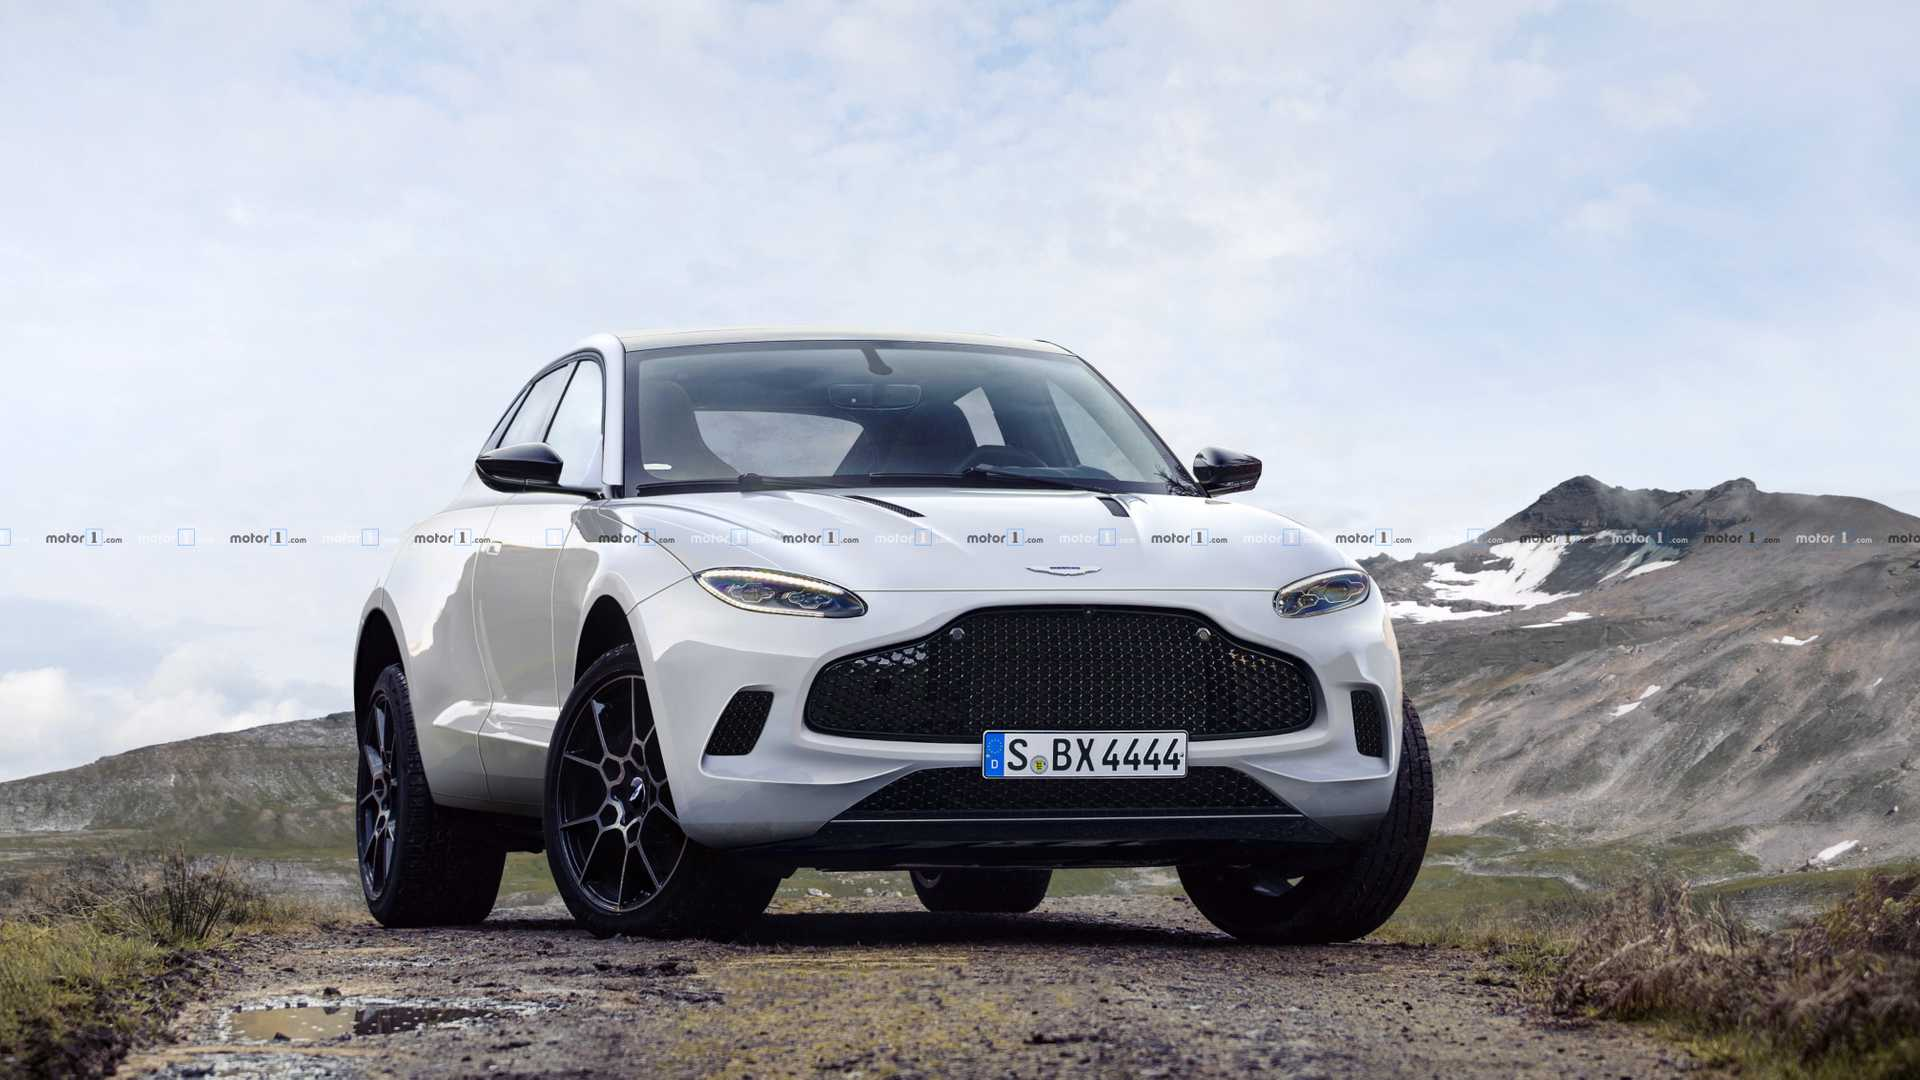 Aston Martin Dbx Rendered Without Camouflage